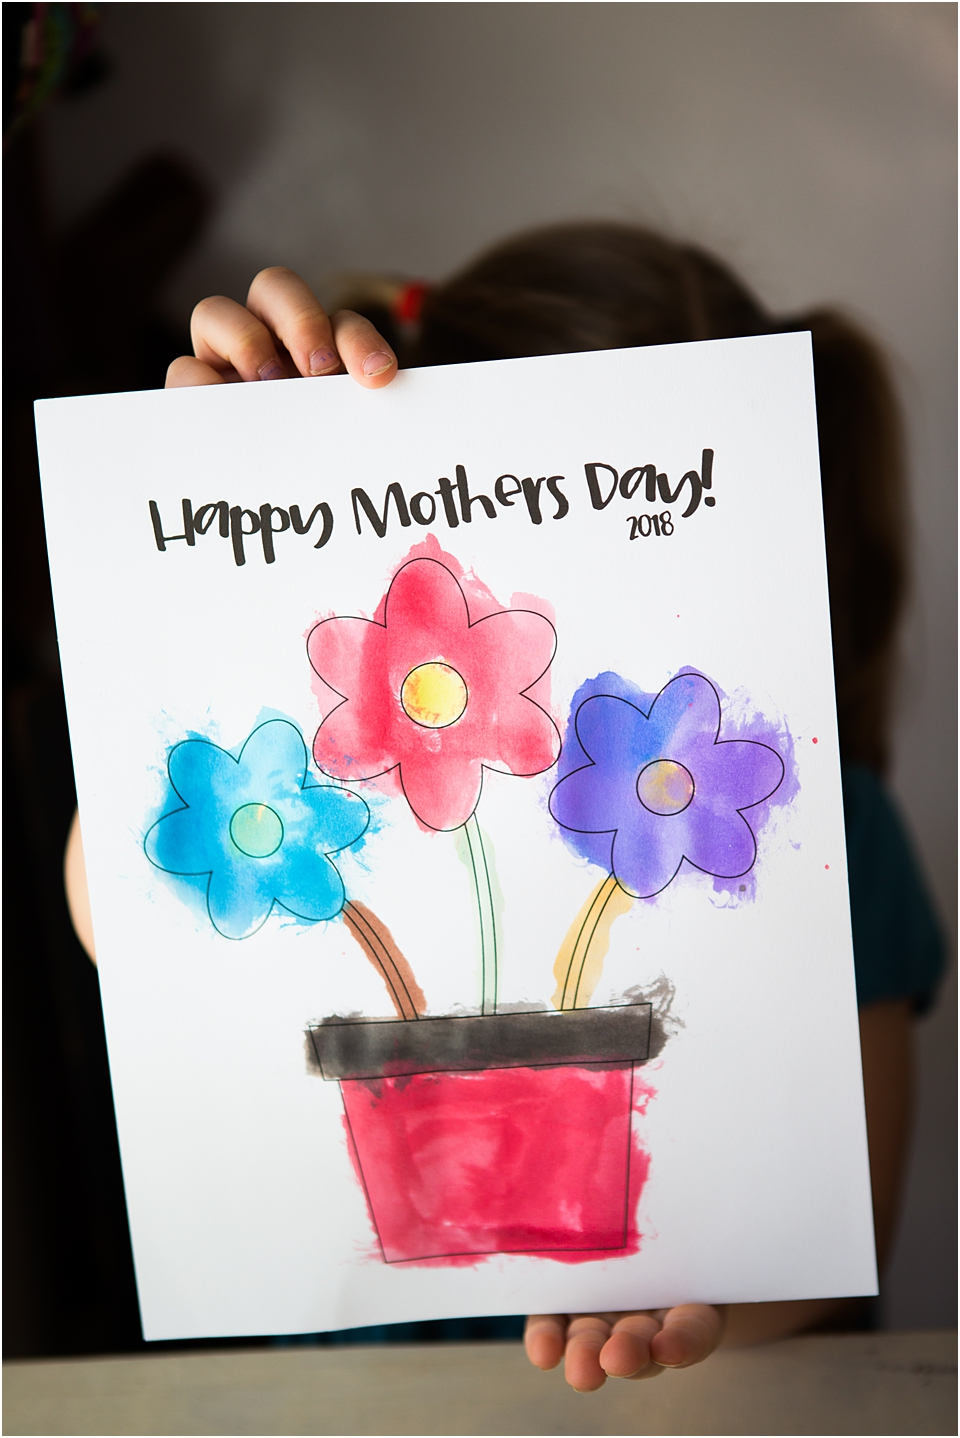 A Mother's Day Directed Drawing STEAM Activity for preschoolers.  Get your FREE Printable and create a handmade Mother's Day craft that preschoolers can make.  This easy mother's day craft can be made in the classroom or preschoolers can make it at home.  Directed Drawing activities enhance listening skills and life skills.